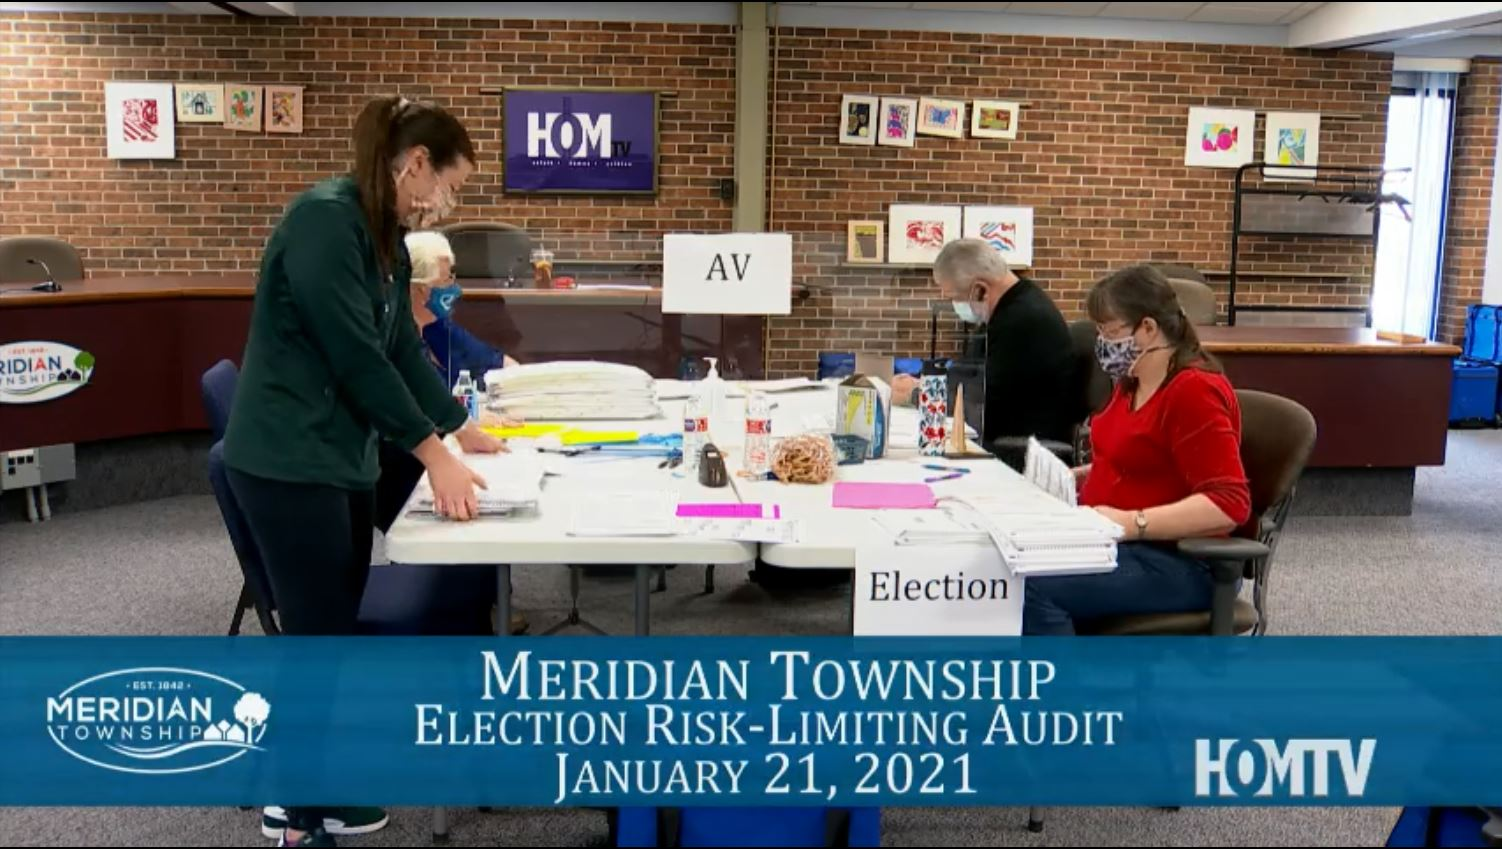 Virtual Meridian Township Election Risk-Limiting Audit